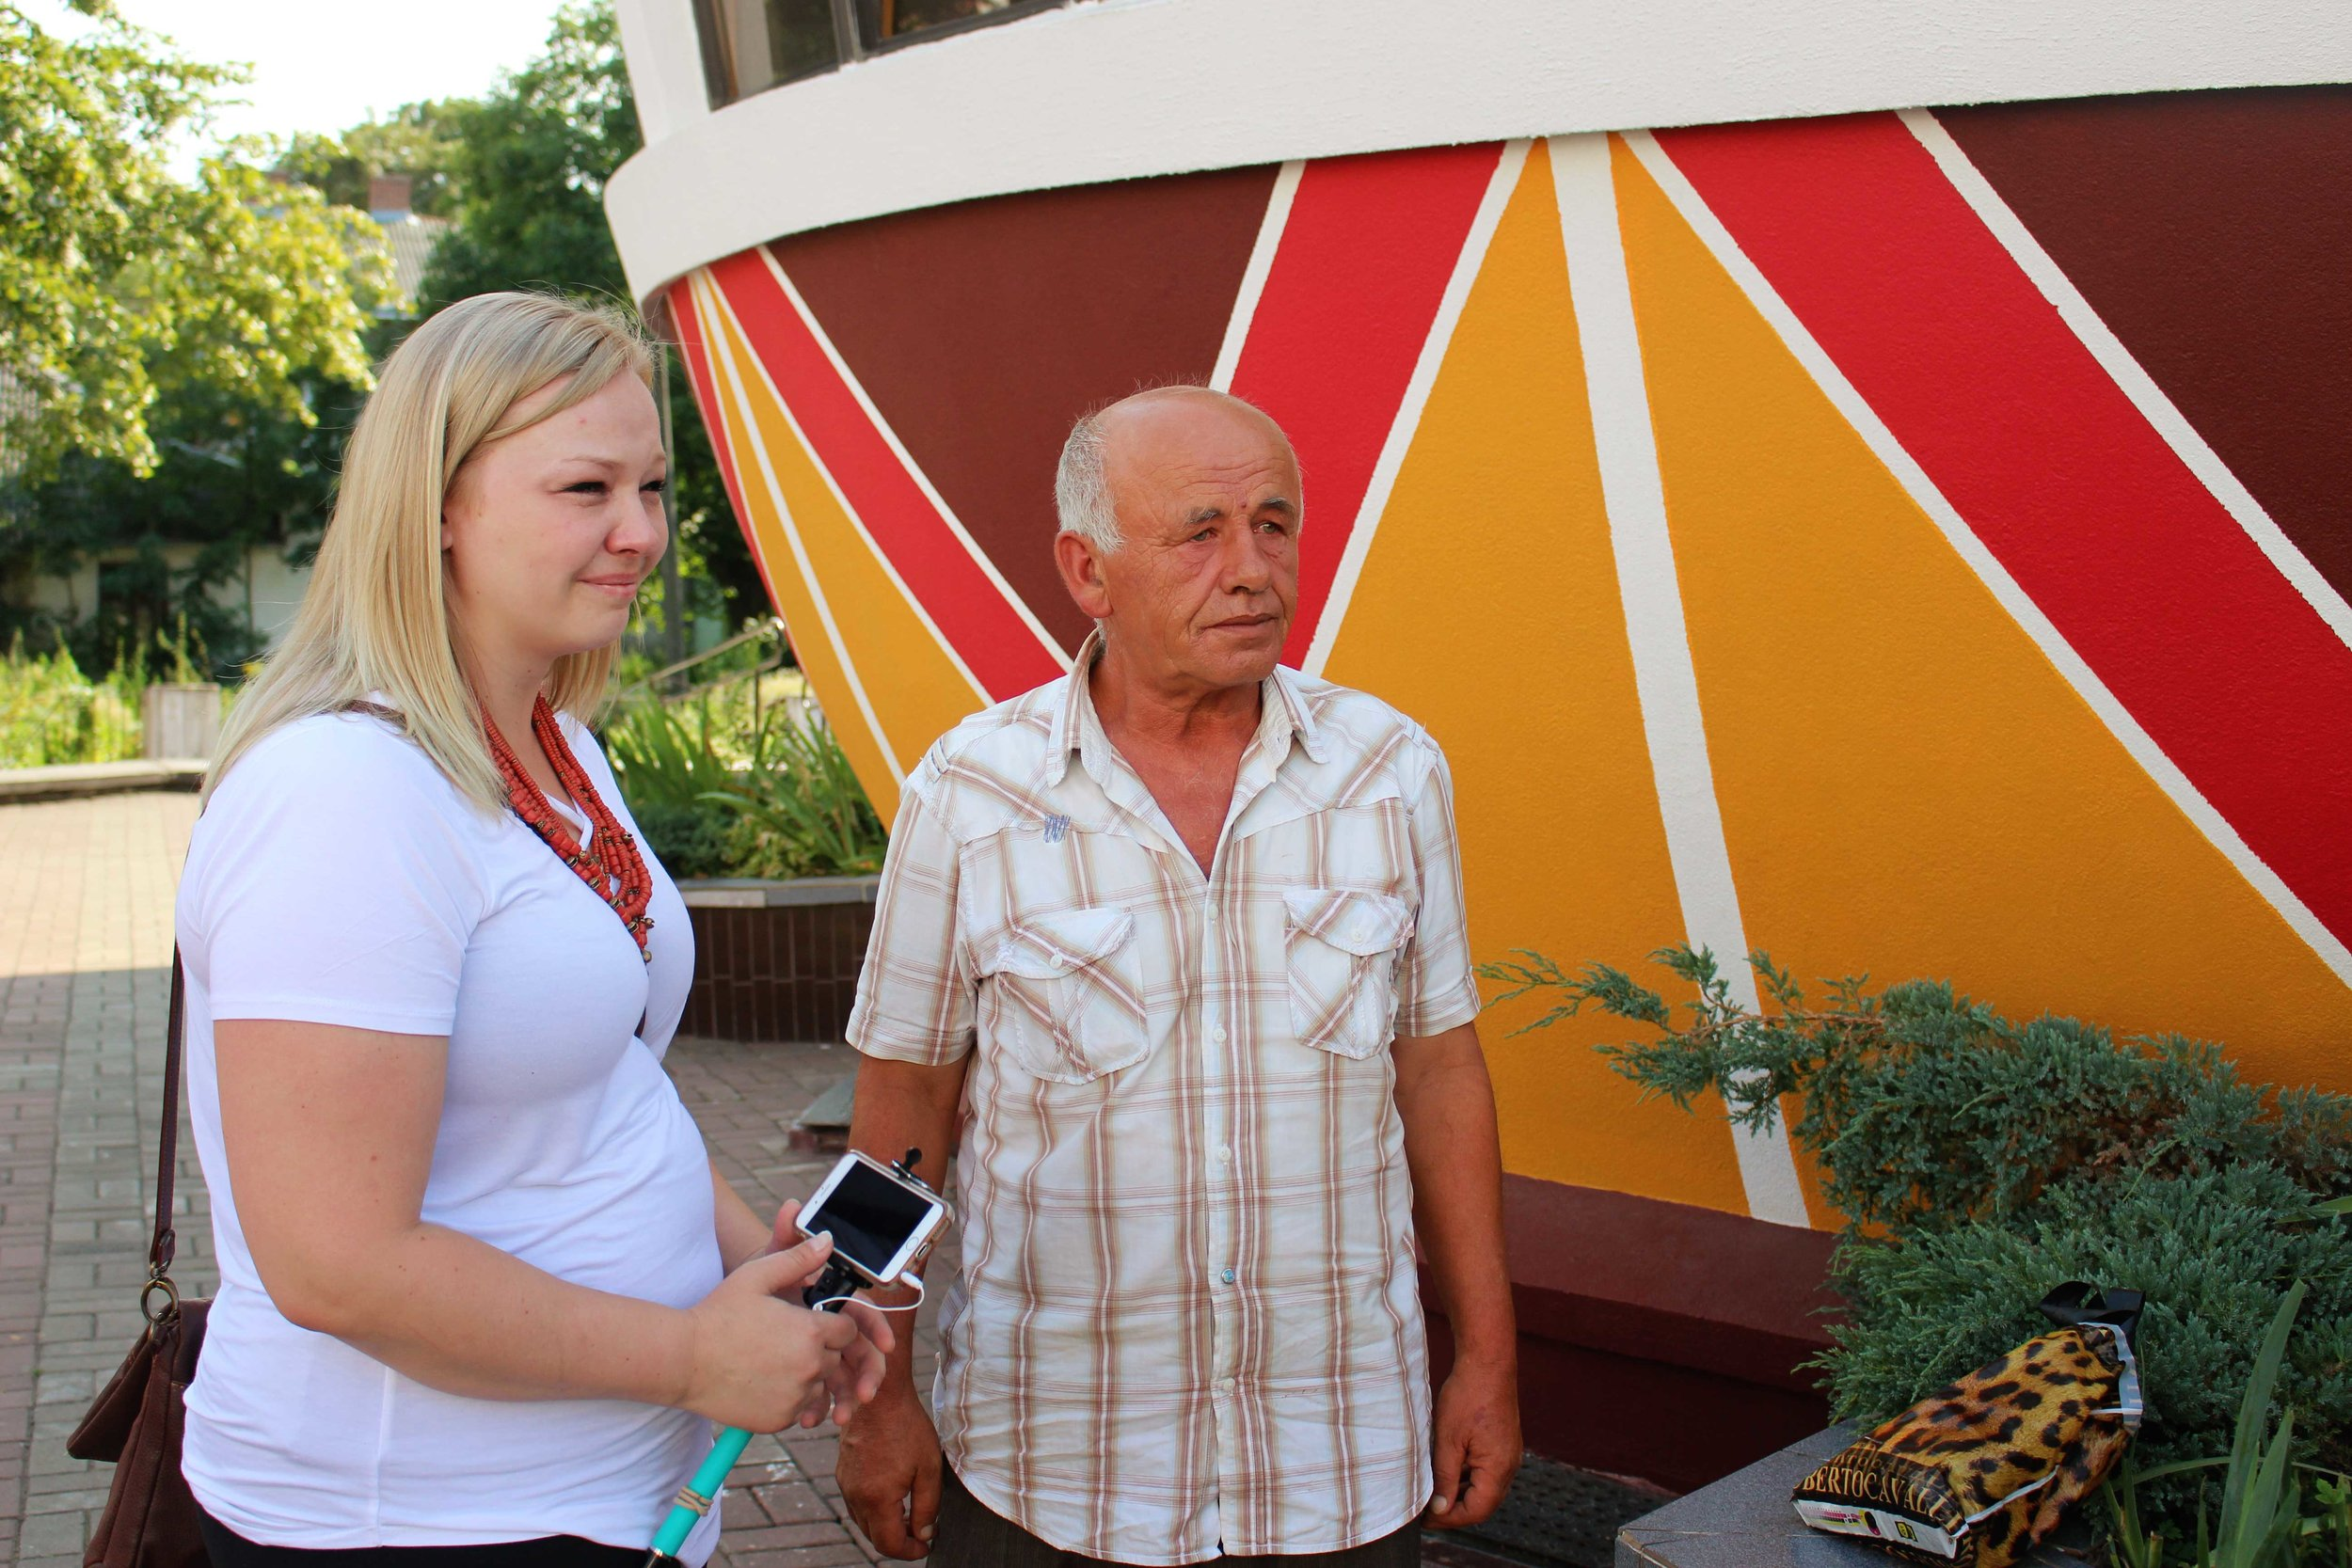 Samantha Luczenczyn, a Troyanda dancer, met up with some family early on in the trip. One of her relatives surprised her in Kolomyia at the Pysanka Museum.